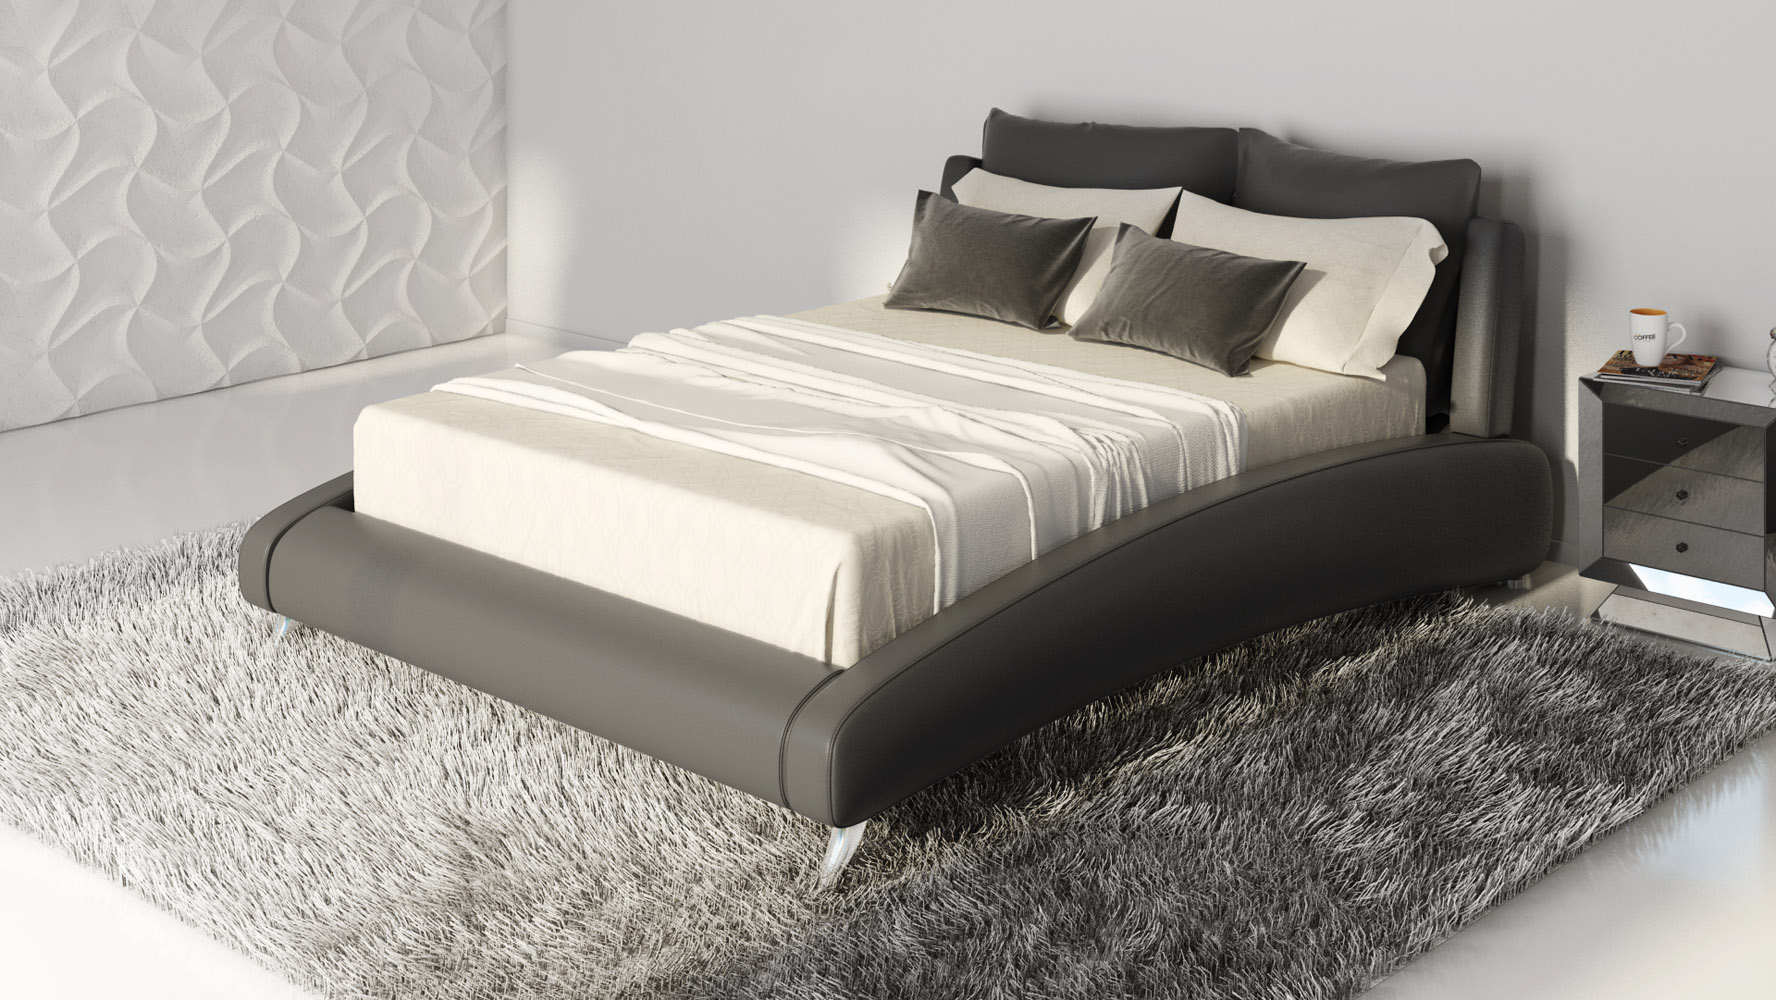 cadillac black leather platform bed by zuri furniture  zuri furniture - mouse over image to zoom or click to view larger